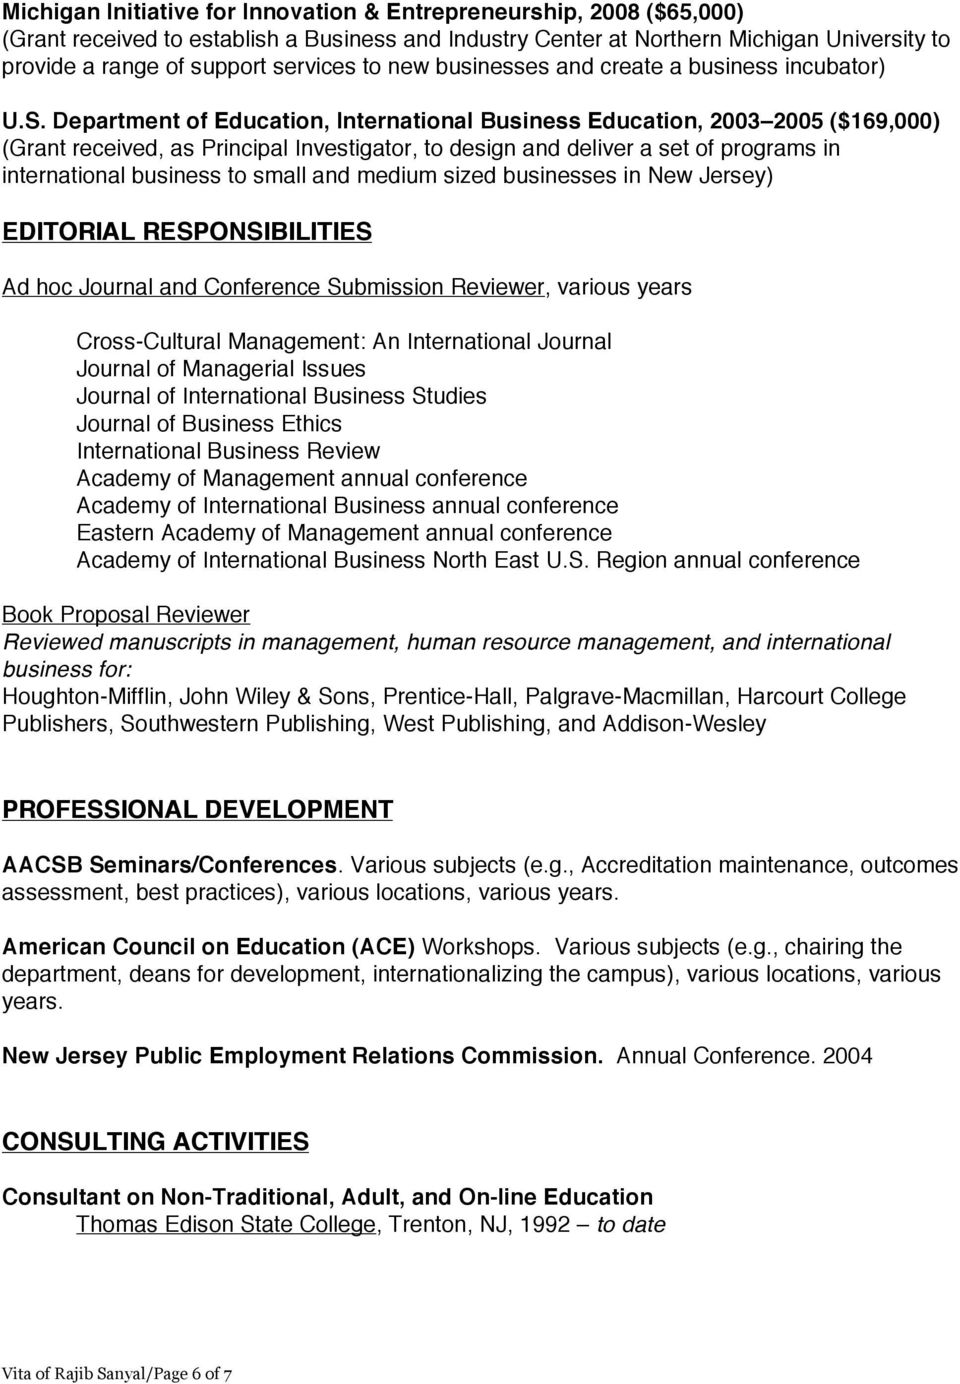 Department of Education, International Business Education, 2003 2005 ($169,000) (Grant received, as Principal Investigator, to design and deliver a set of programs in international business to small